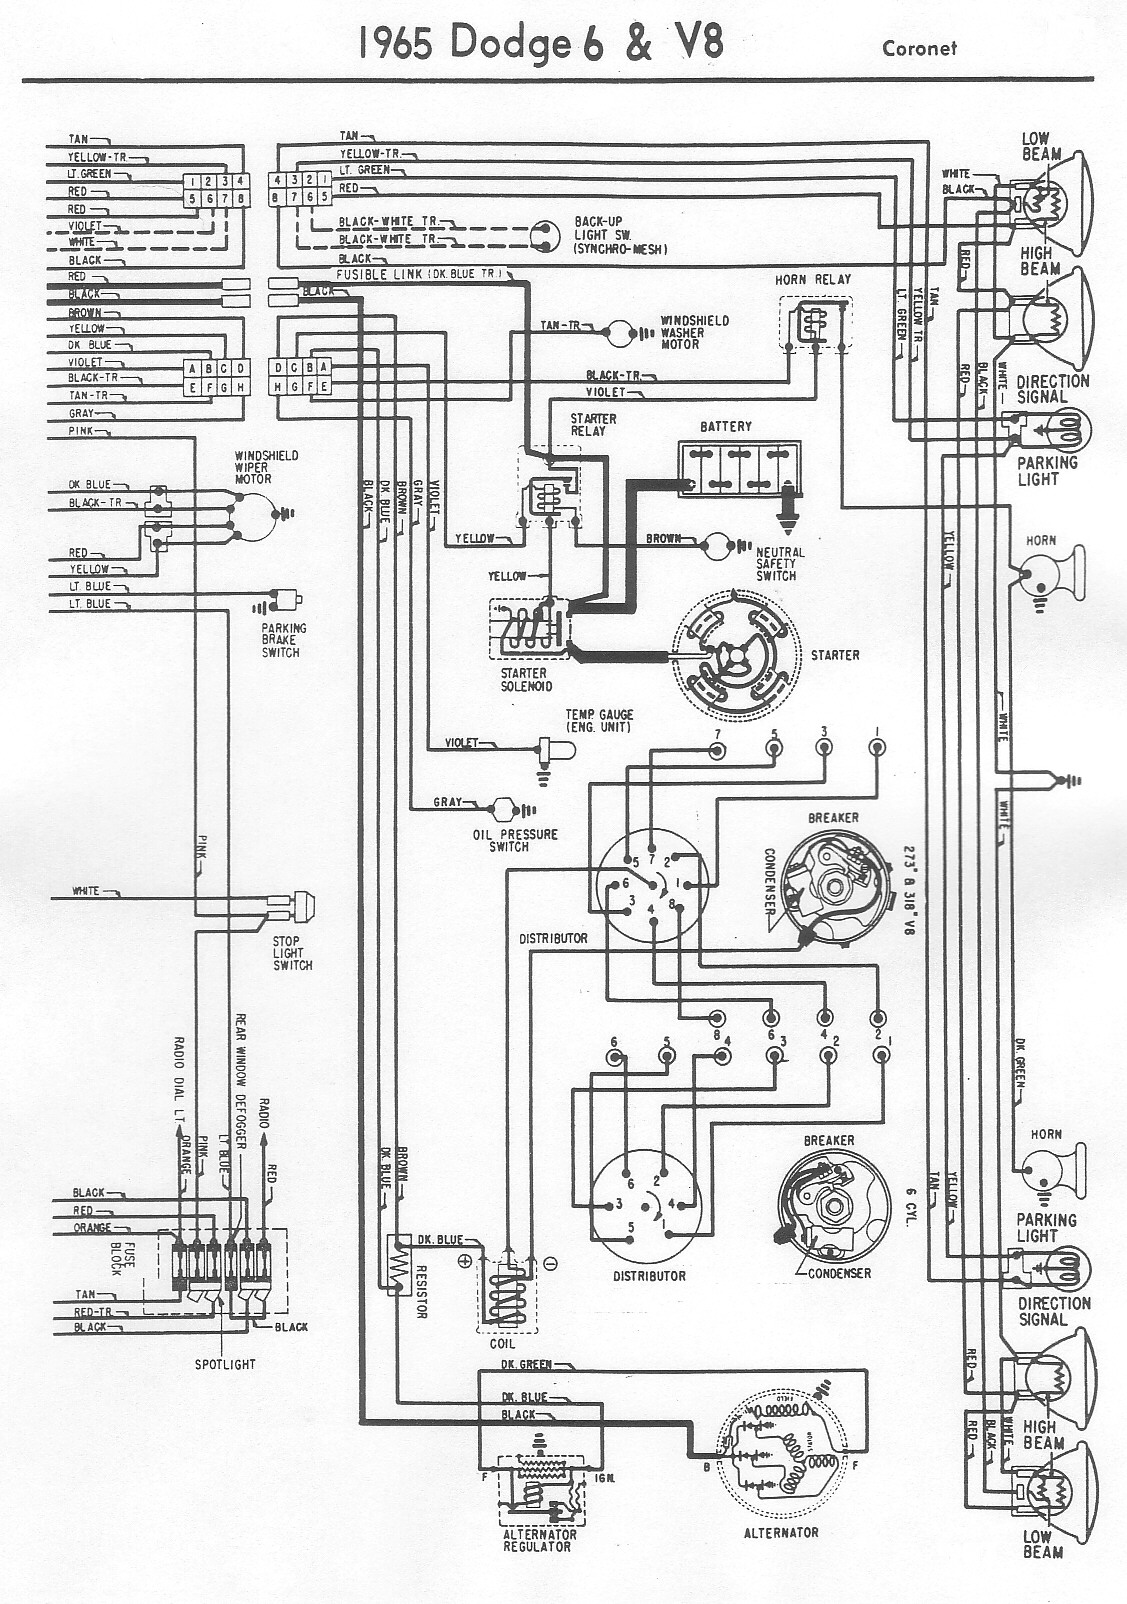 1965 wiring diagram vintage dodge coronet2 1966 dart wiring diagram 1966 caprice wiring \u2022 wiring diagrams  at mifinder.co